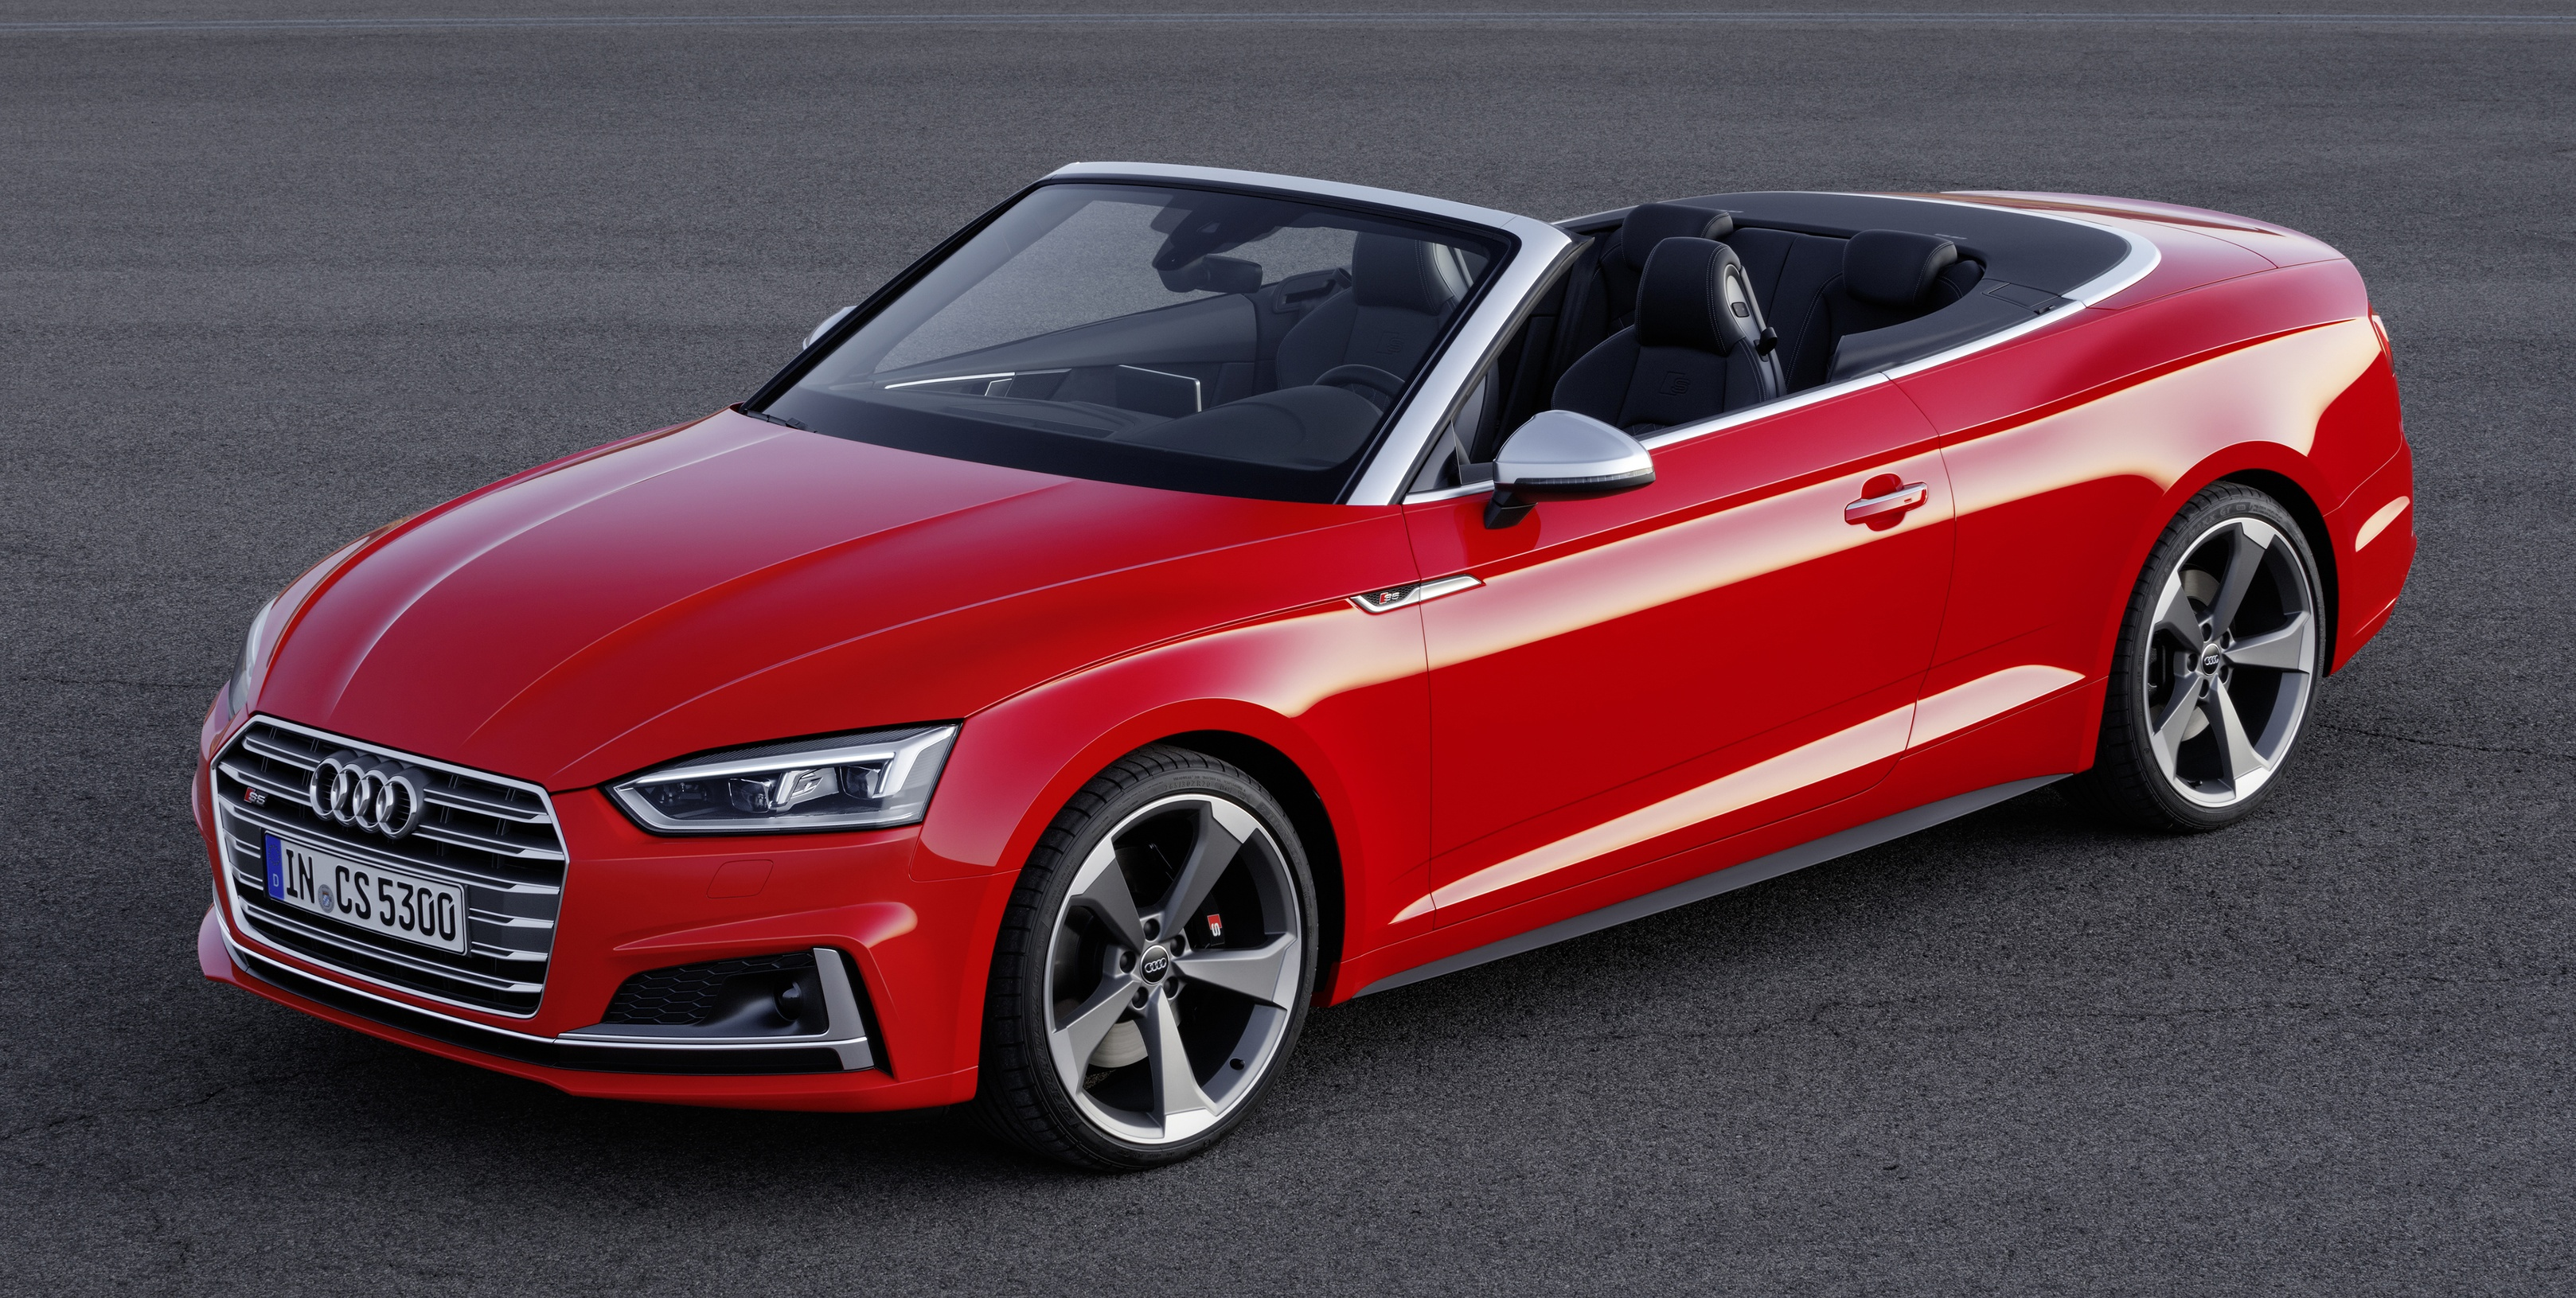 2017 Audi A5 And S5 Cabriolet The Soft Top Revealed Paultan Org